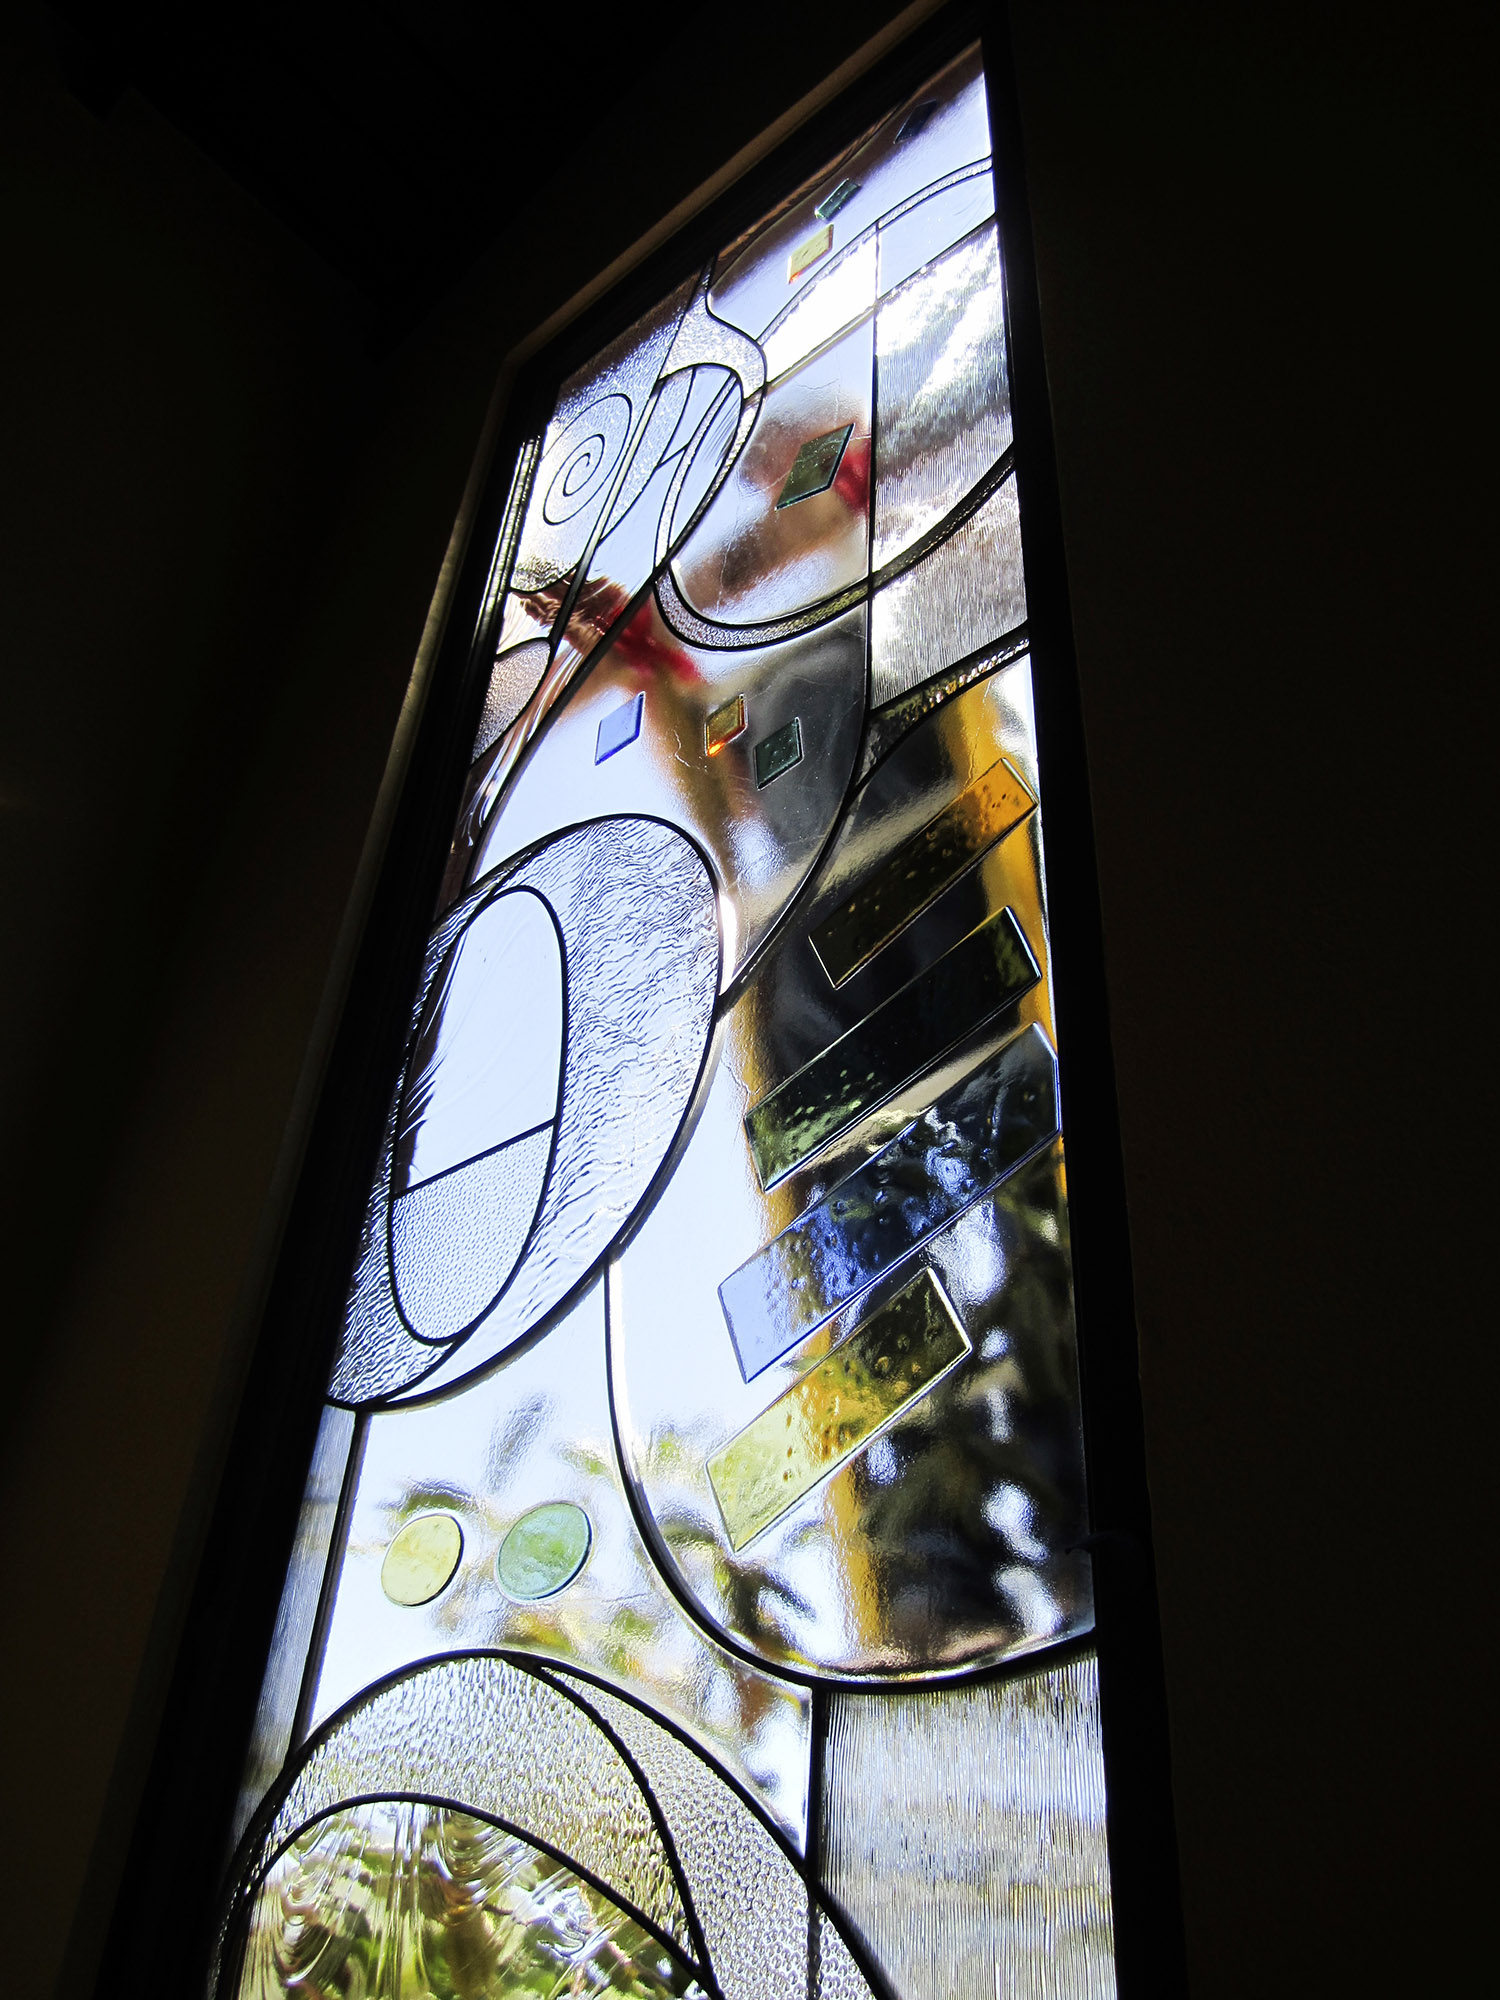 fused glass stained glass installation abstract art palo alto atherton menlo park san jose san francisco bay area.jpg